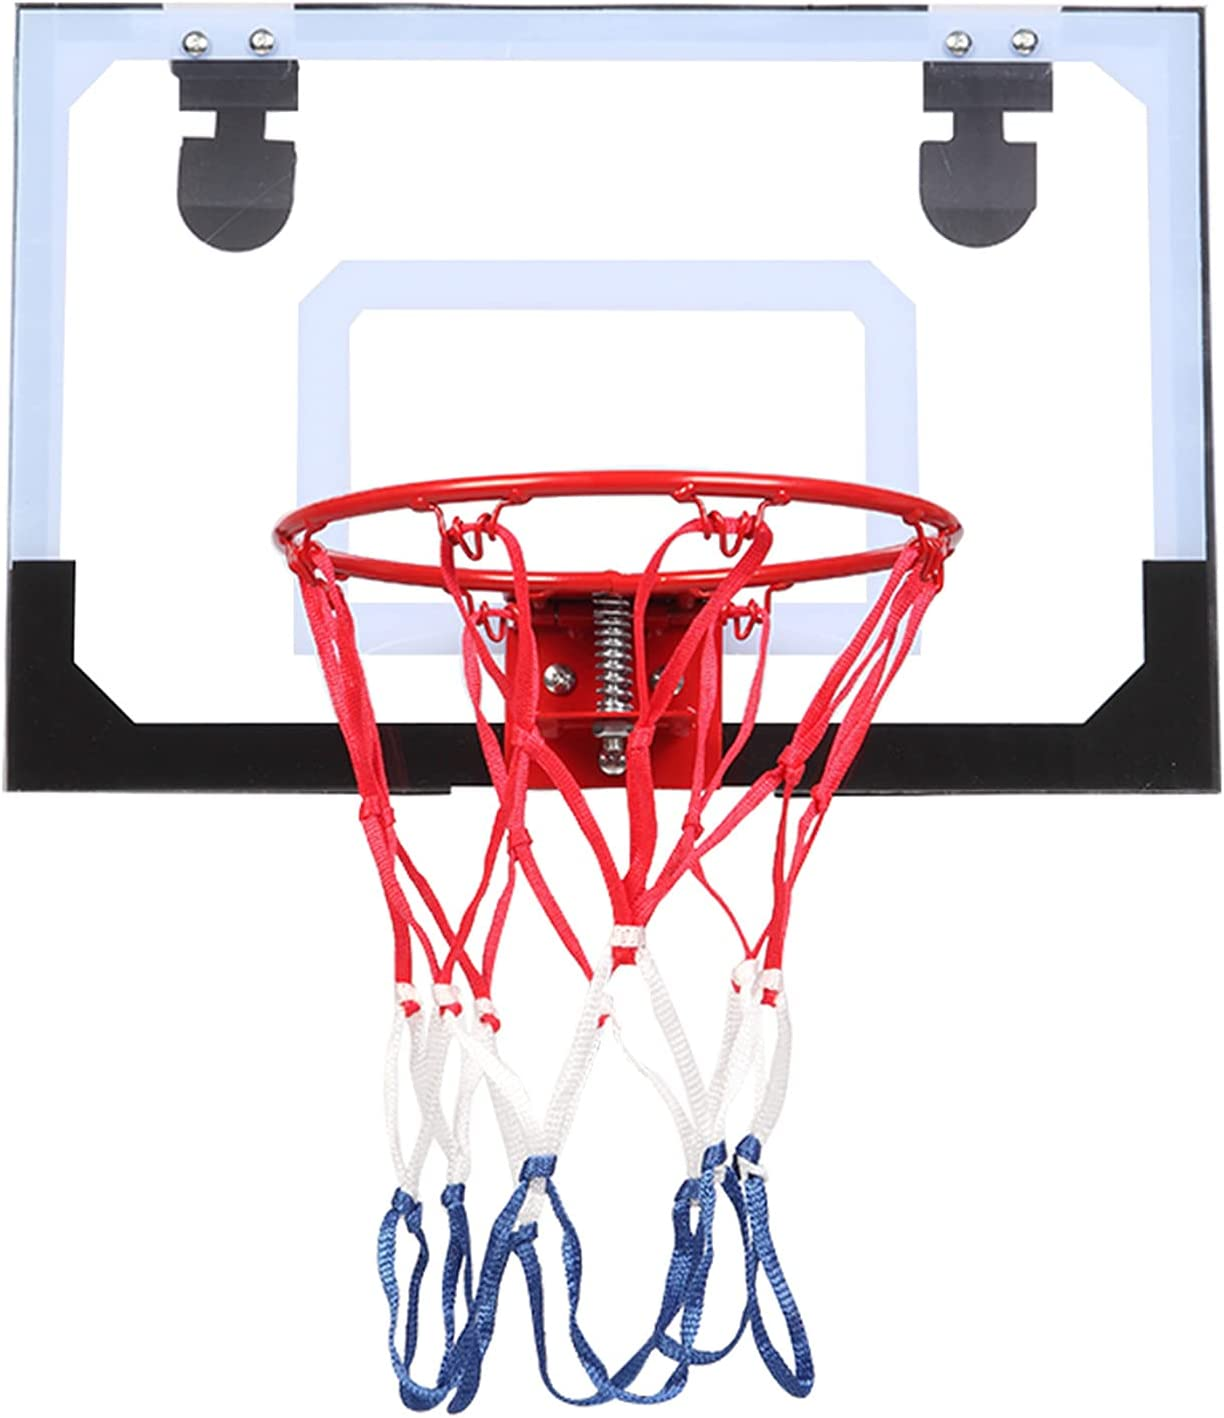 Bysesion GT1-JL Wall Mount Max 61% OFF Clear Ranking TOP11 Baske with Basketball Backboard